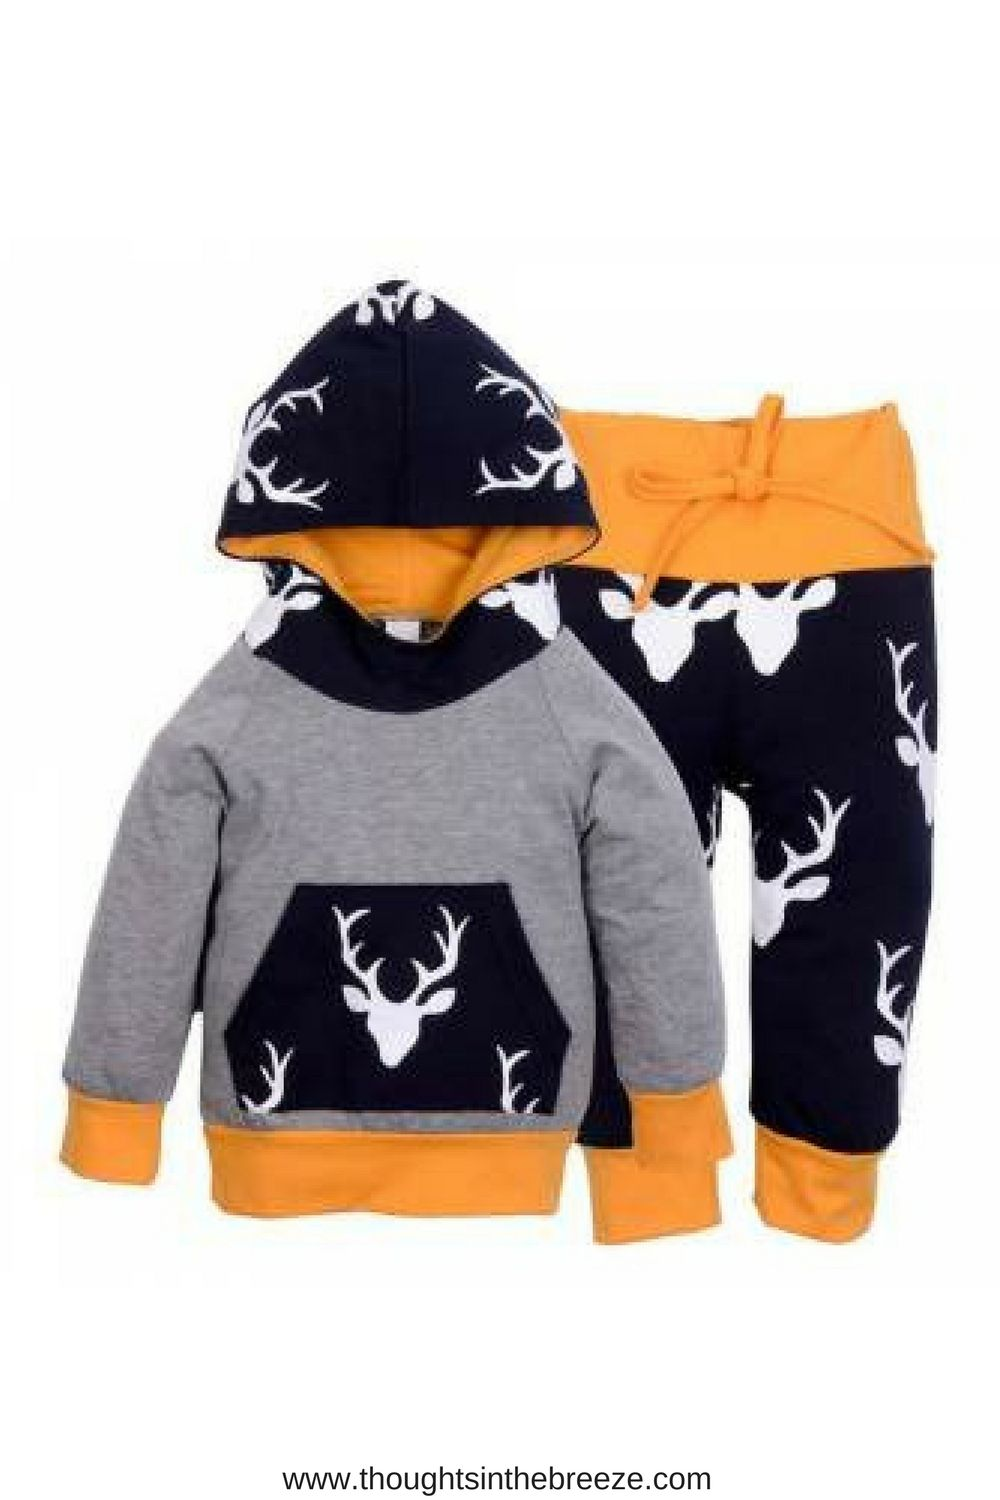 30b706ce $9.90 Newborn Xmas Baby Rompers Cotton Long Sleeve Deer Printing Toddler  Jumpsuit Infant Christmas Clothes Baby Boys Girls Clothing.